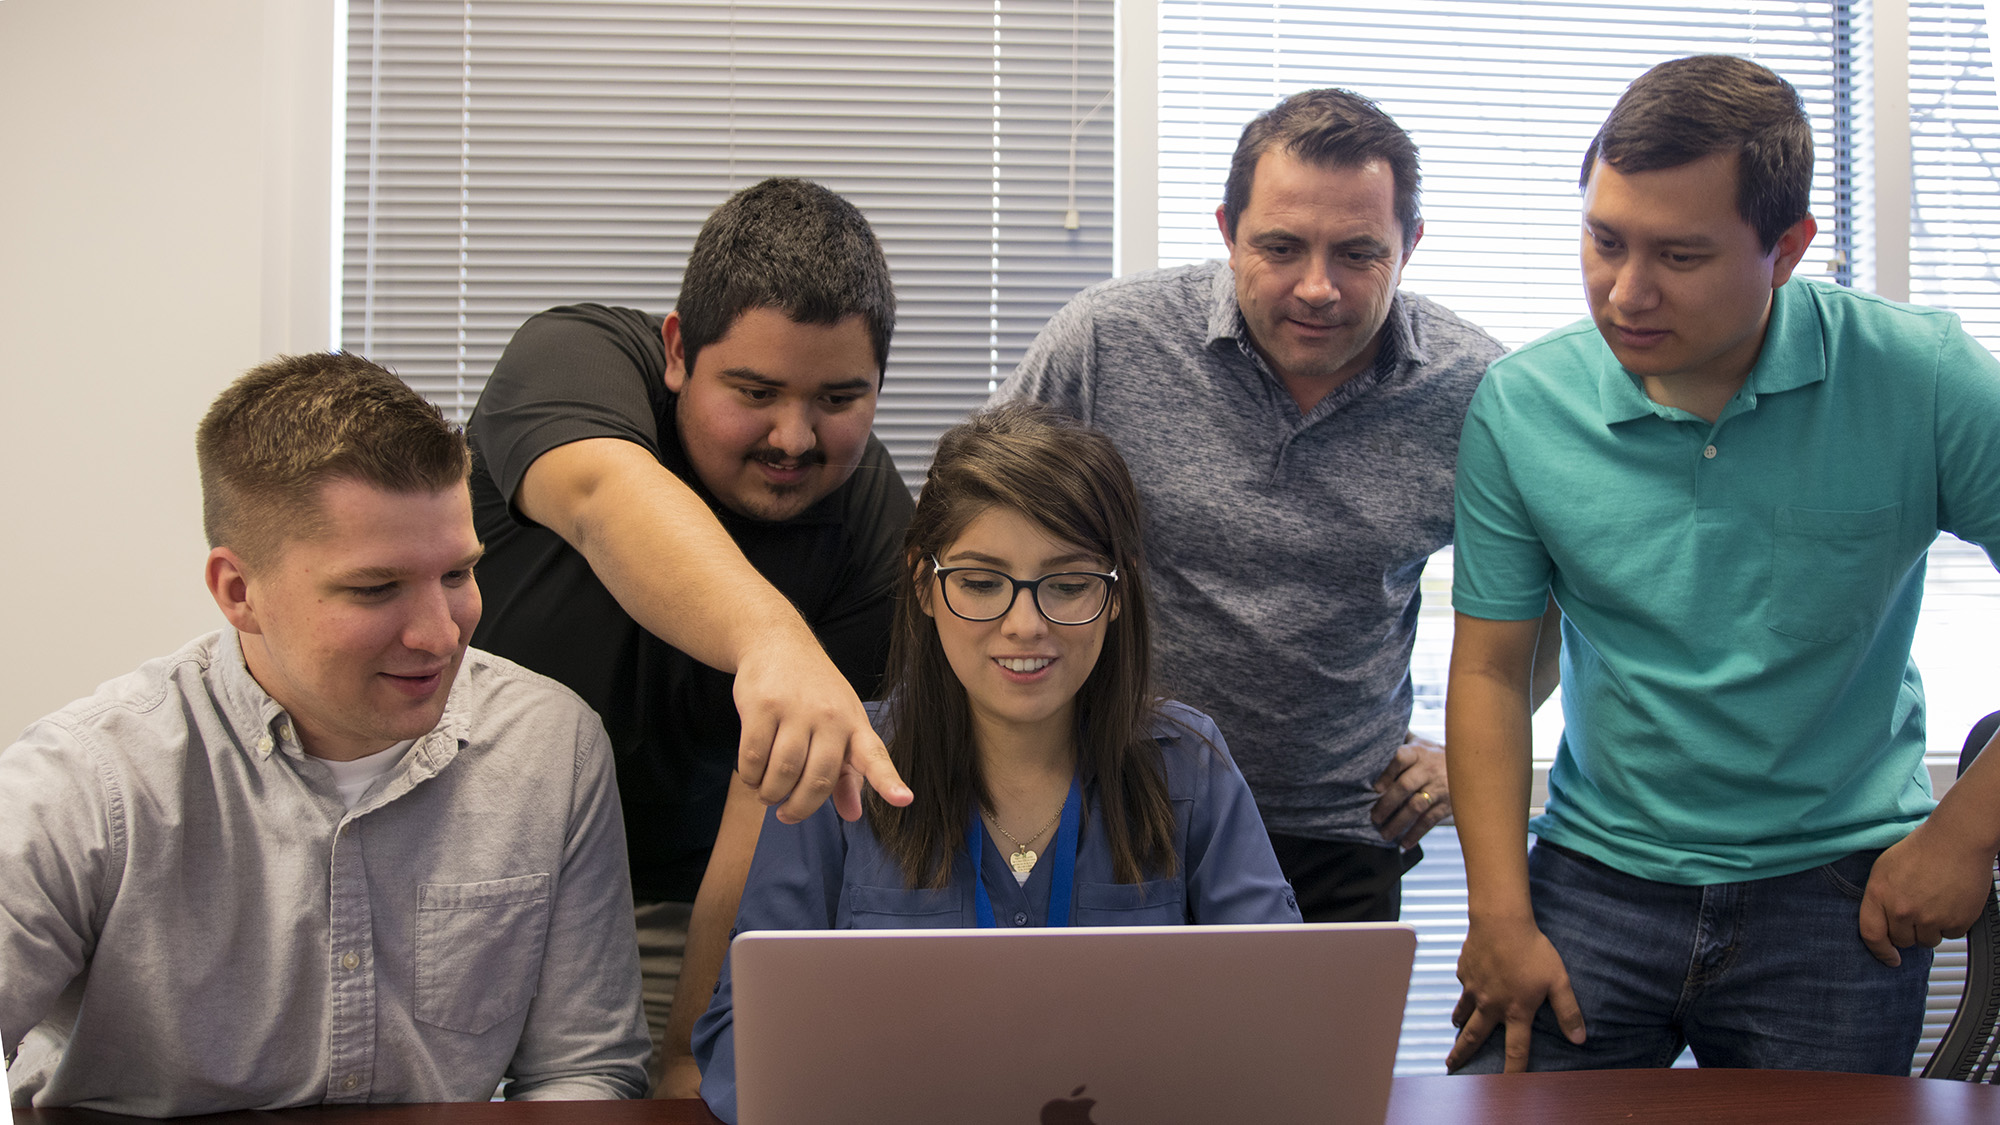 A group of 4 interns look at a laptop with their mentor in an office environment